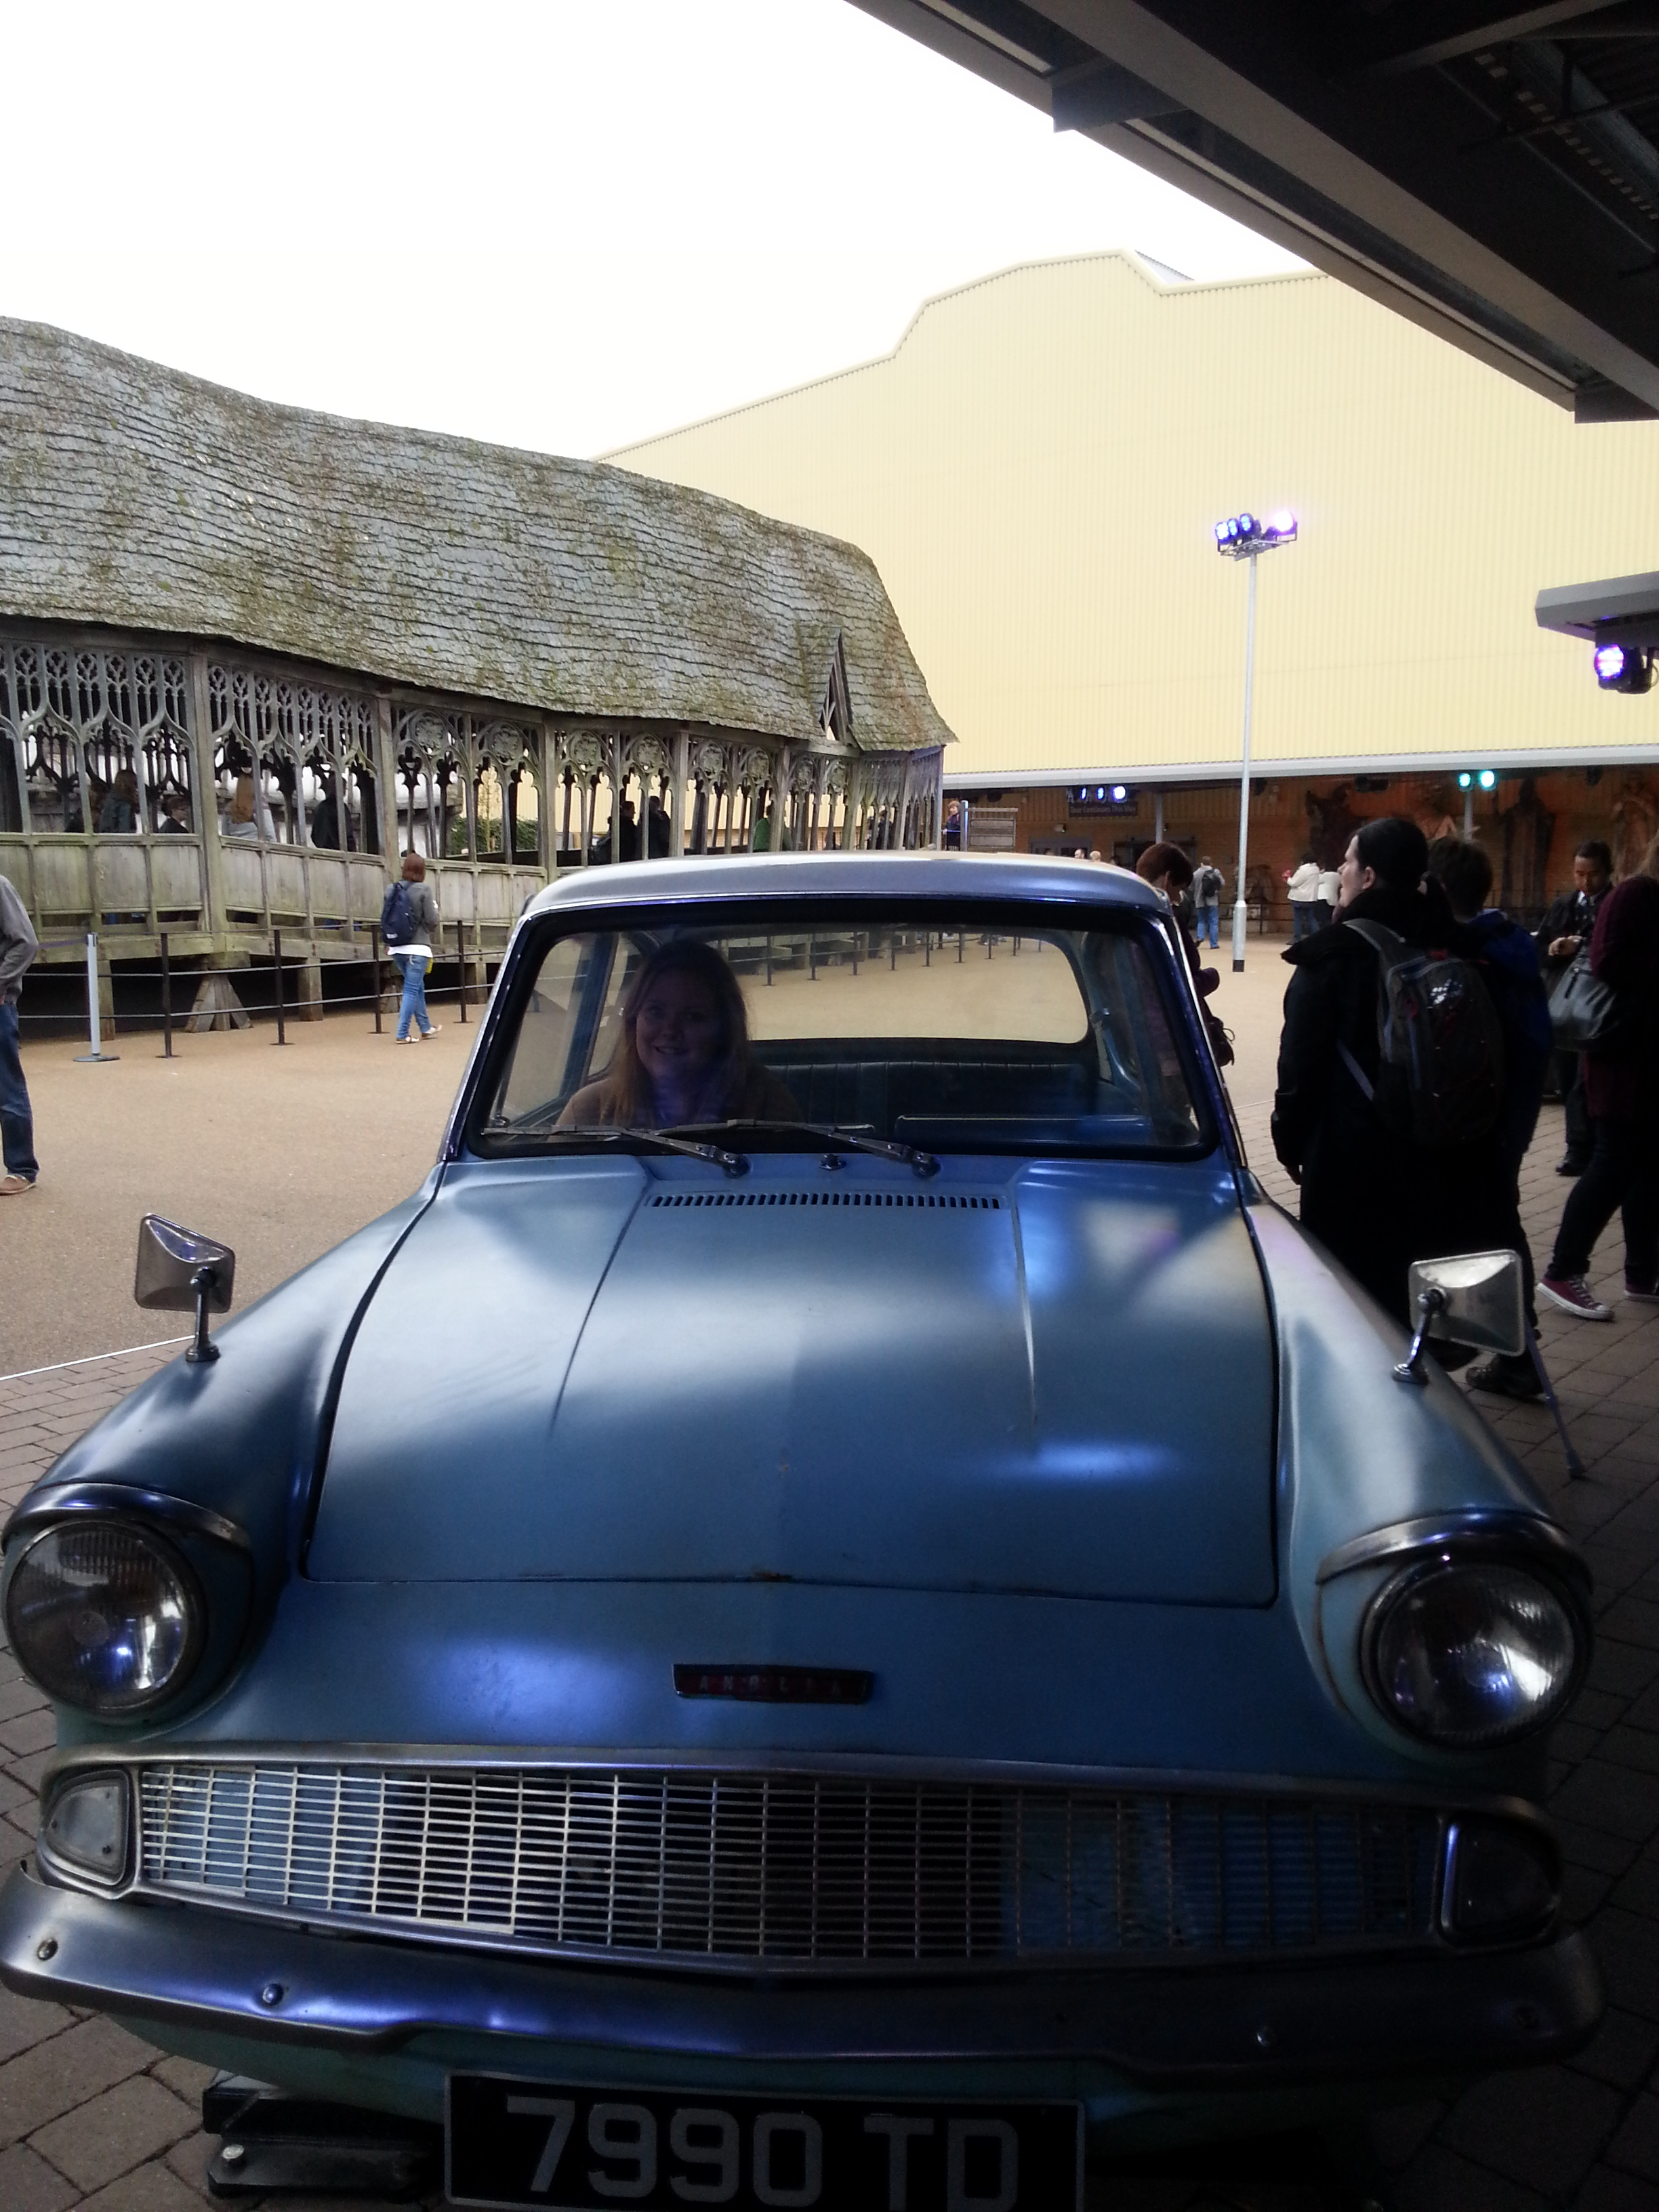 Driving Mr Weasley's flying Ford Anglia.